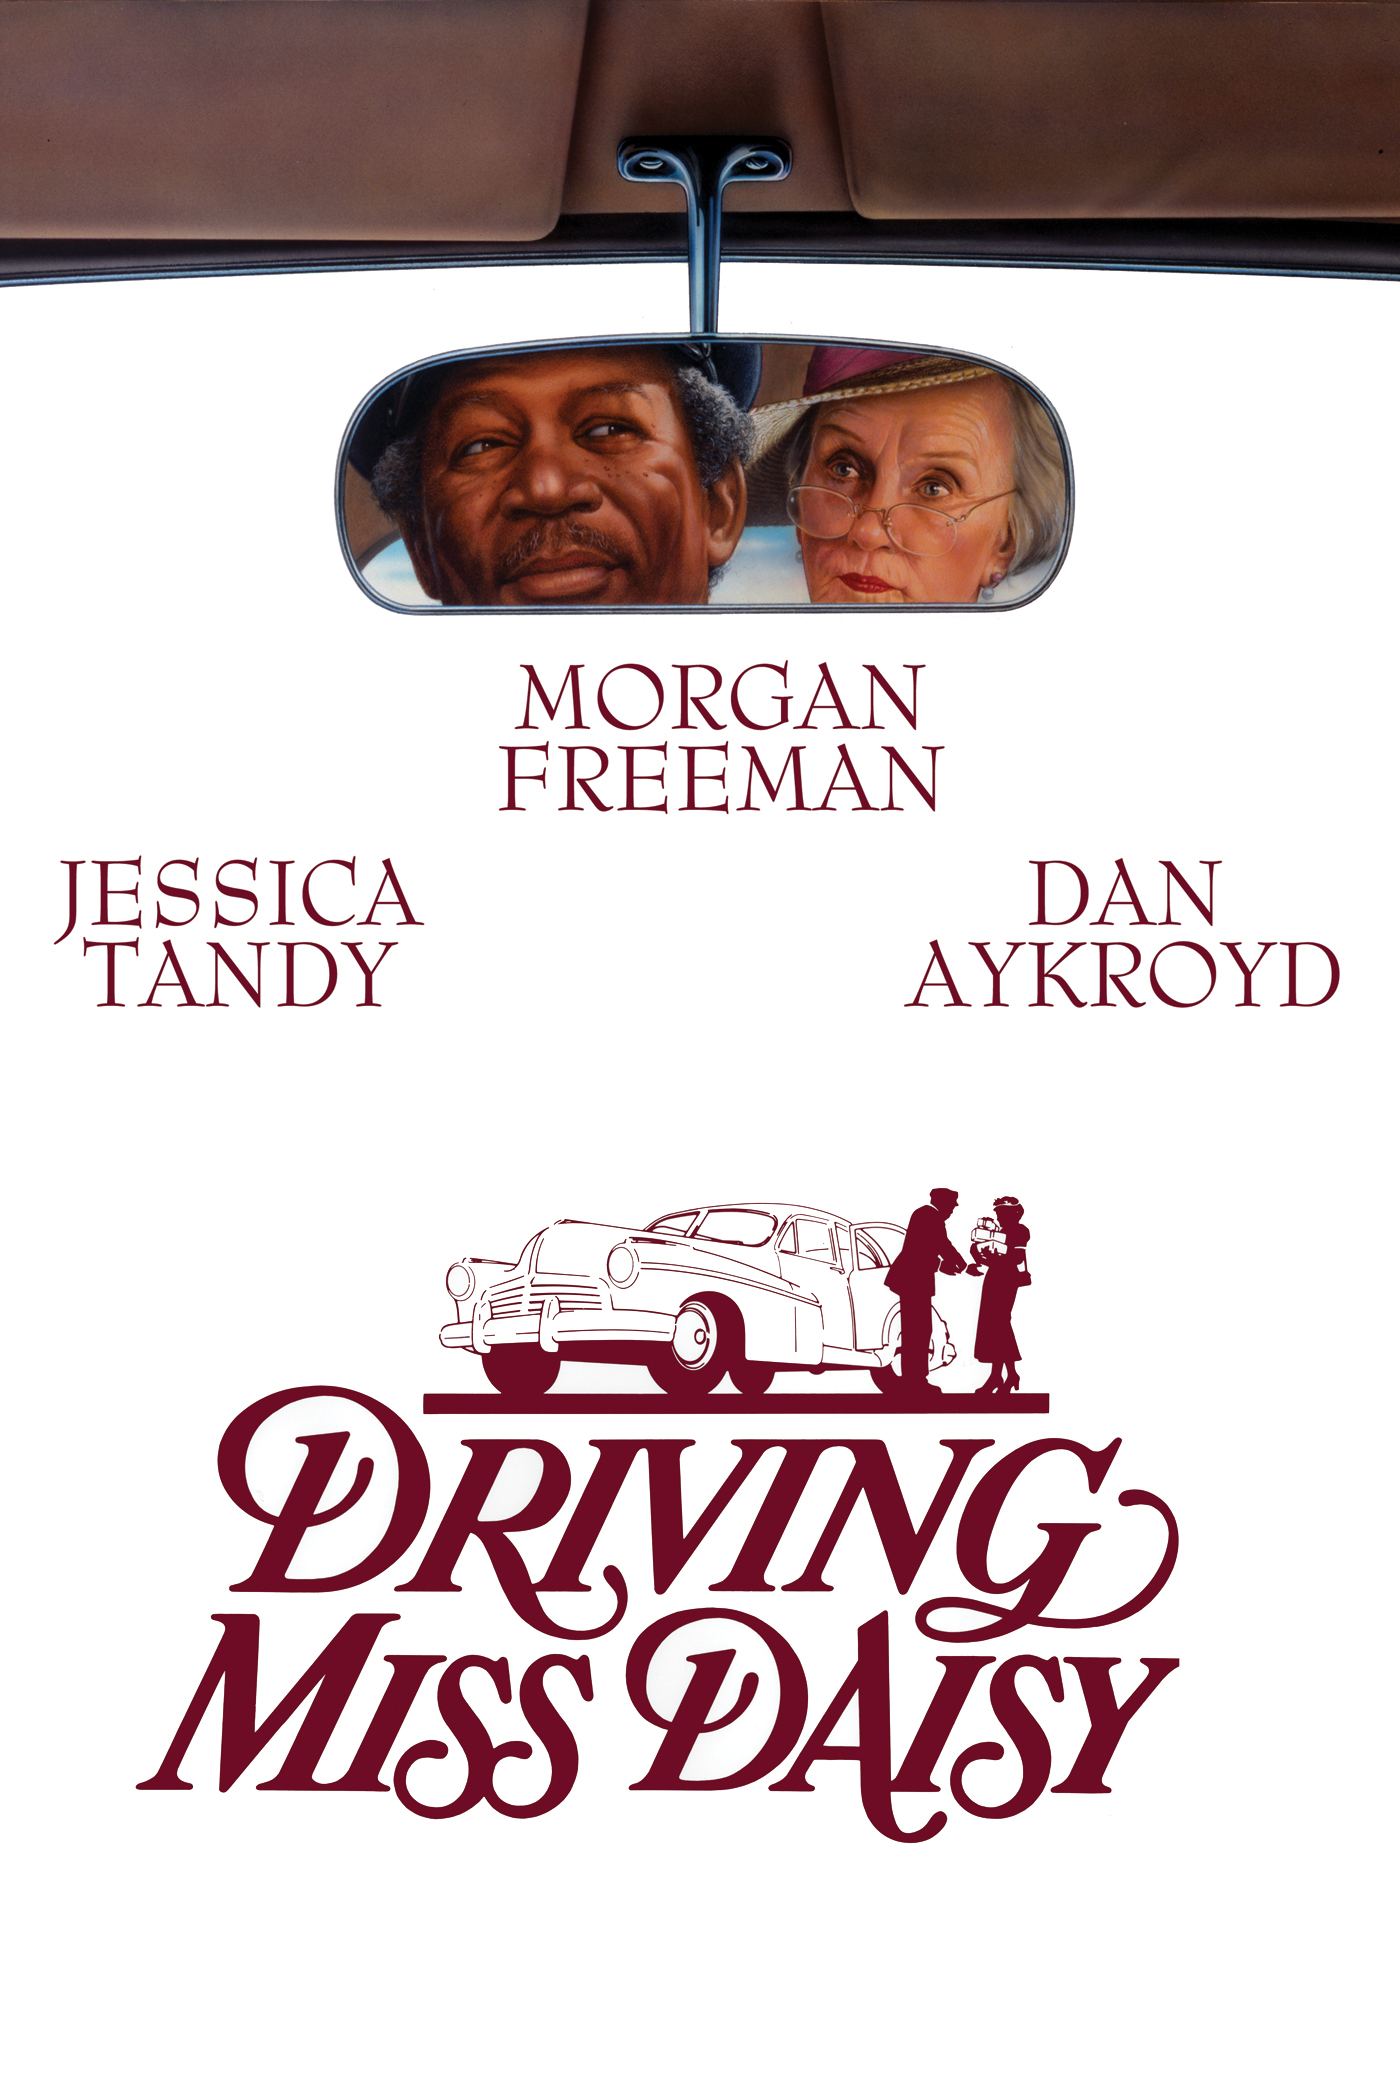 Driving Miss Daisy DVD cover